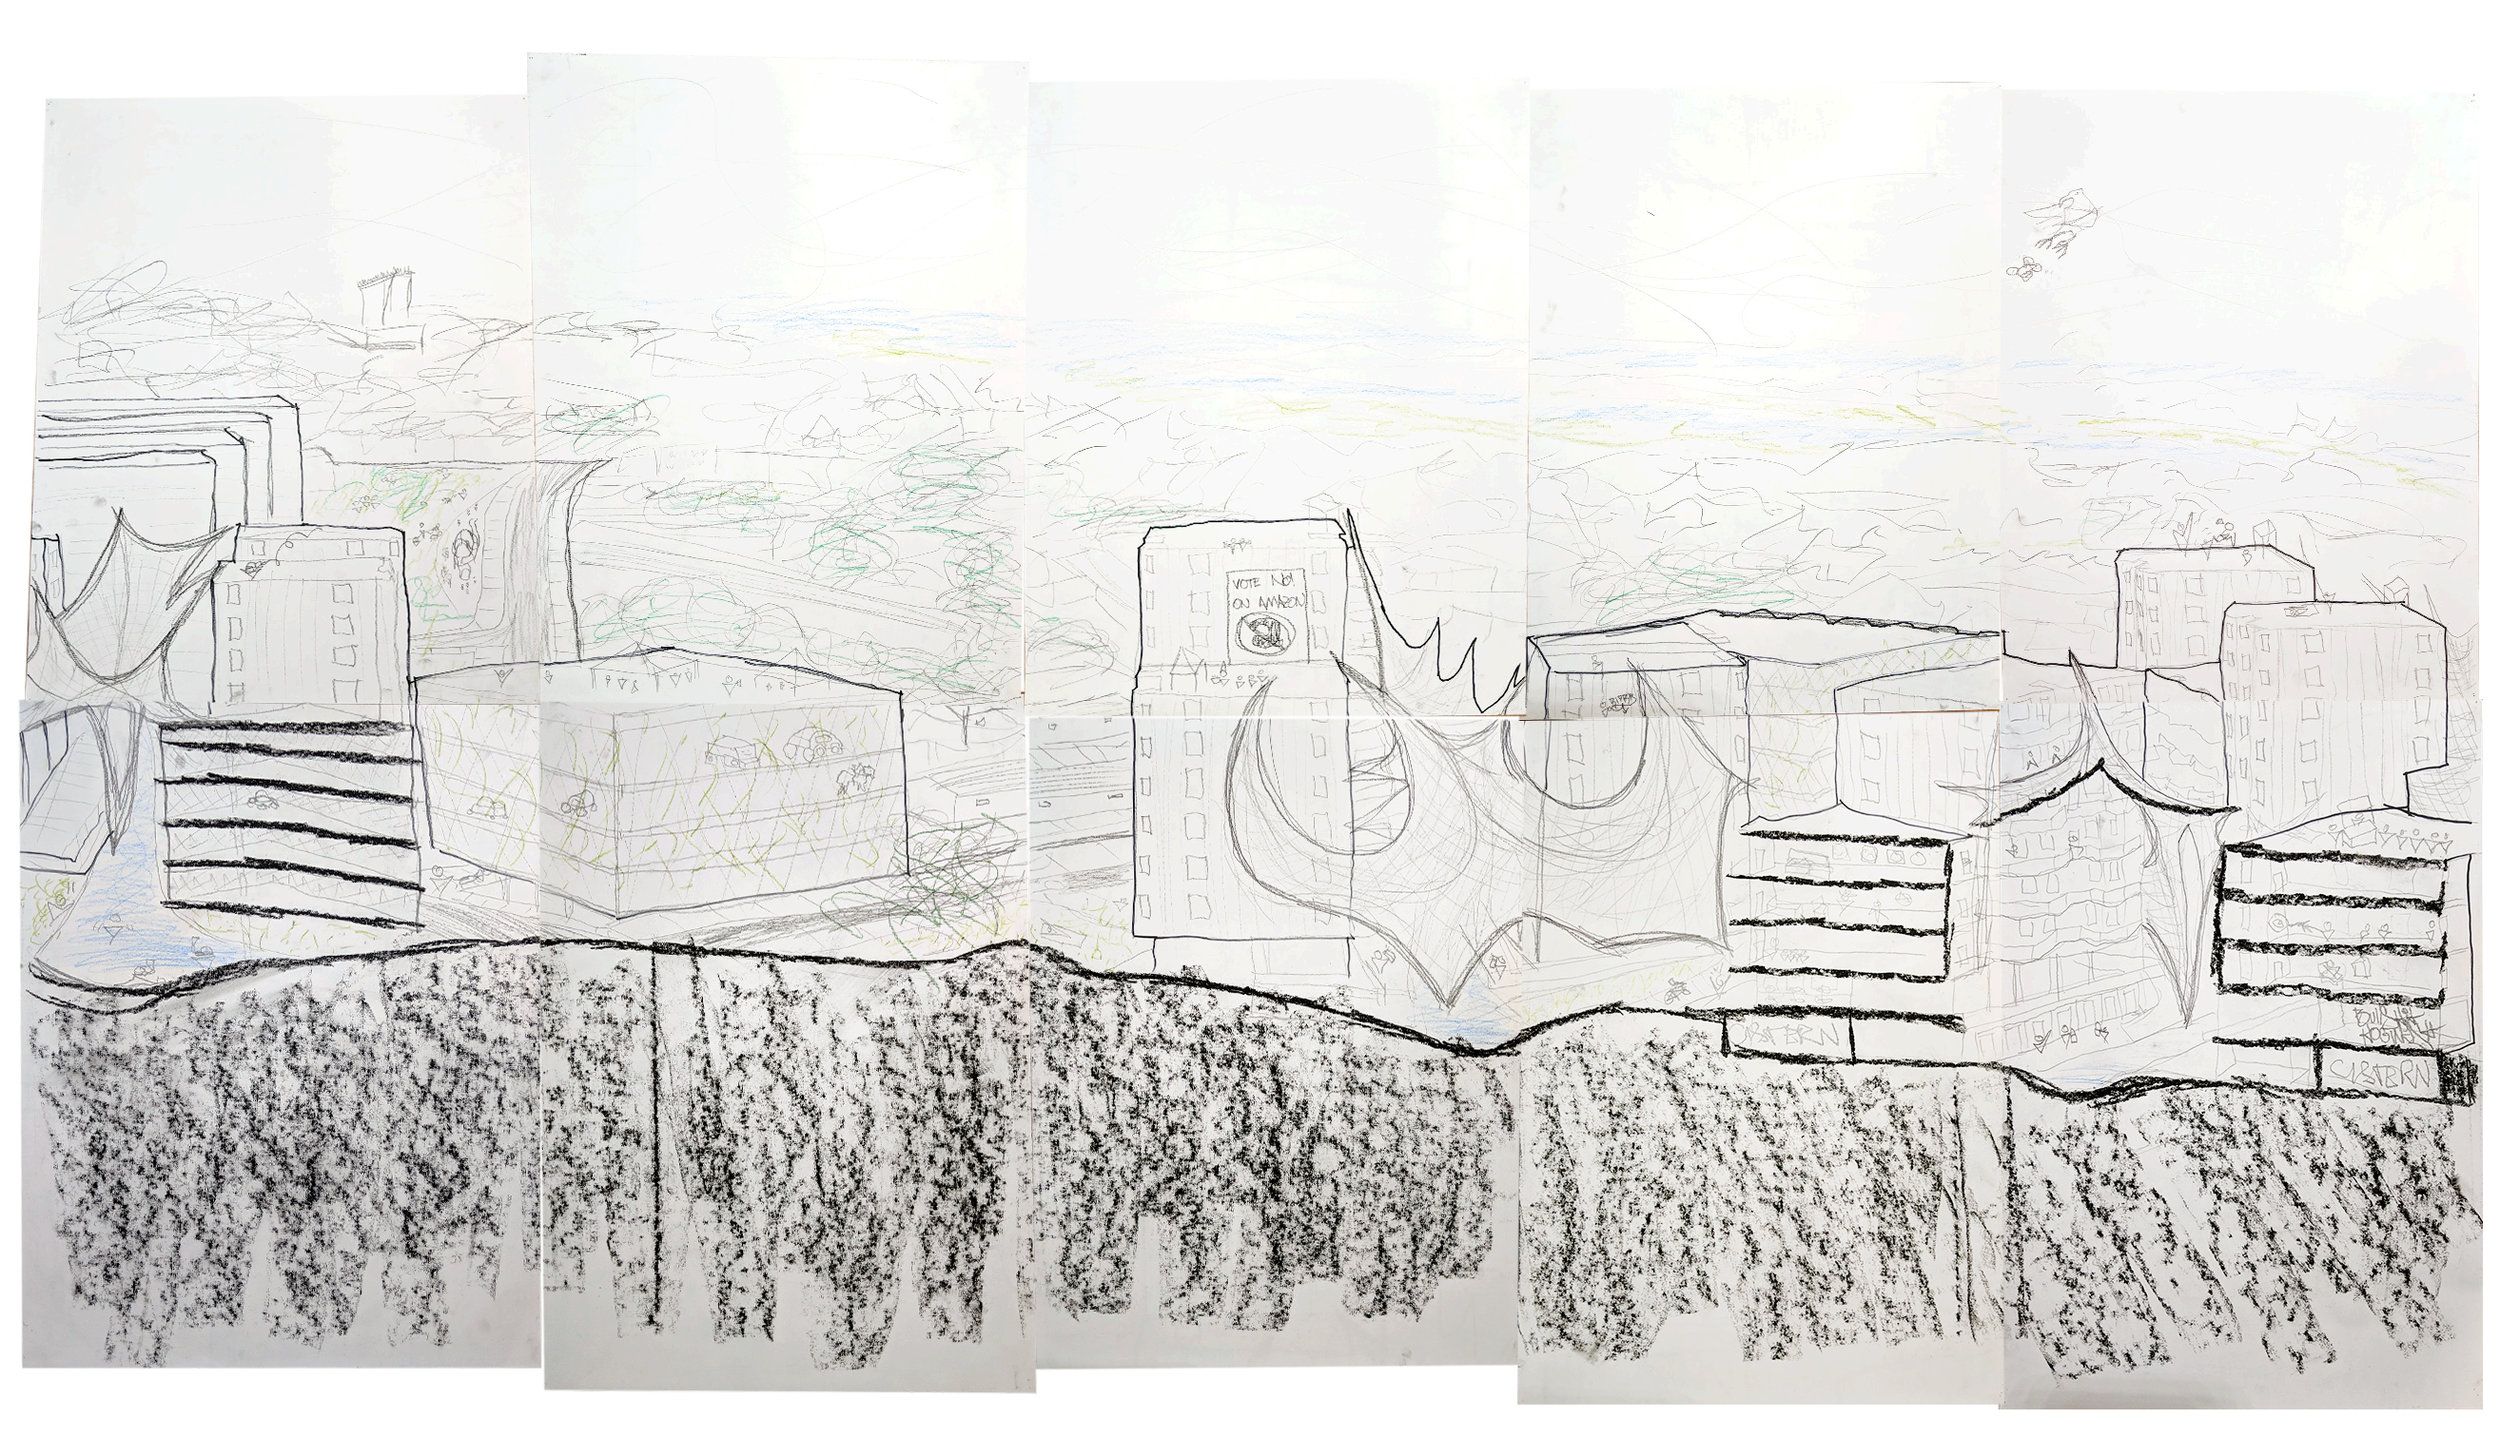 7.5' x 4' Section Perspective.Charcoal, Pencil, Colored Pencil